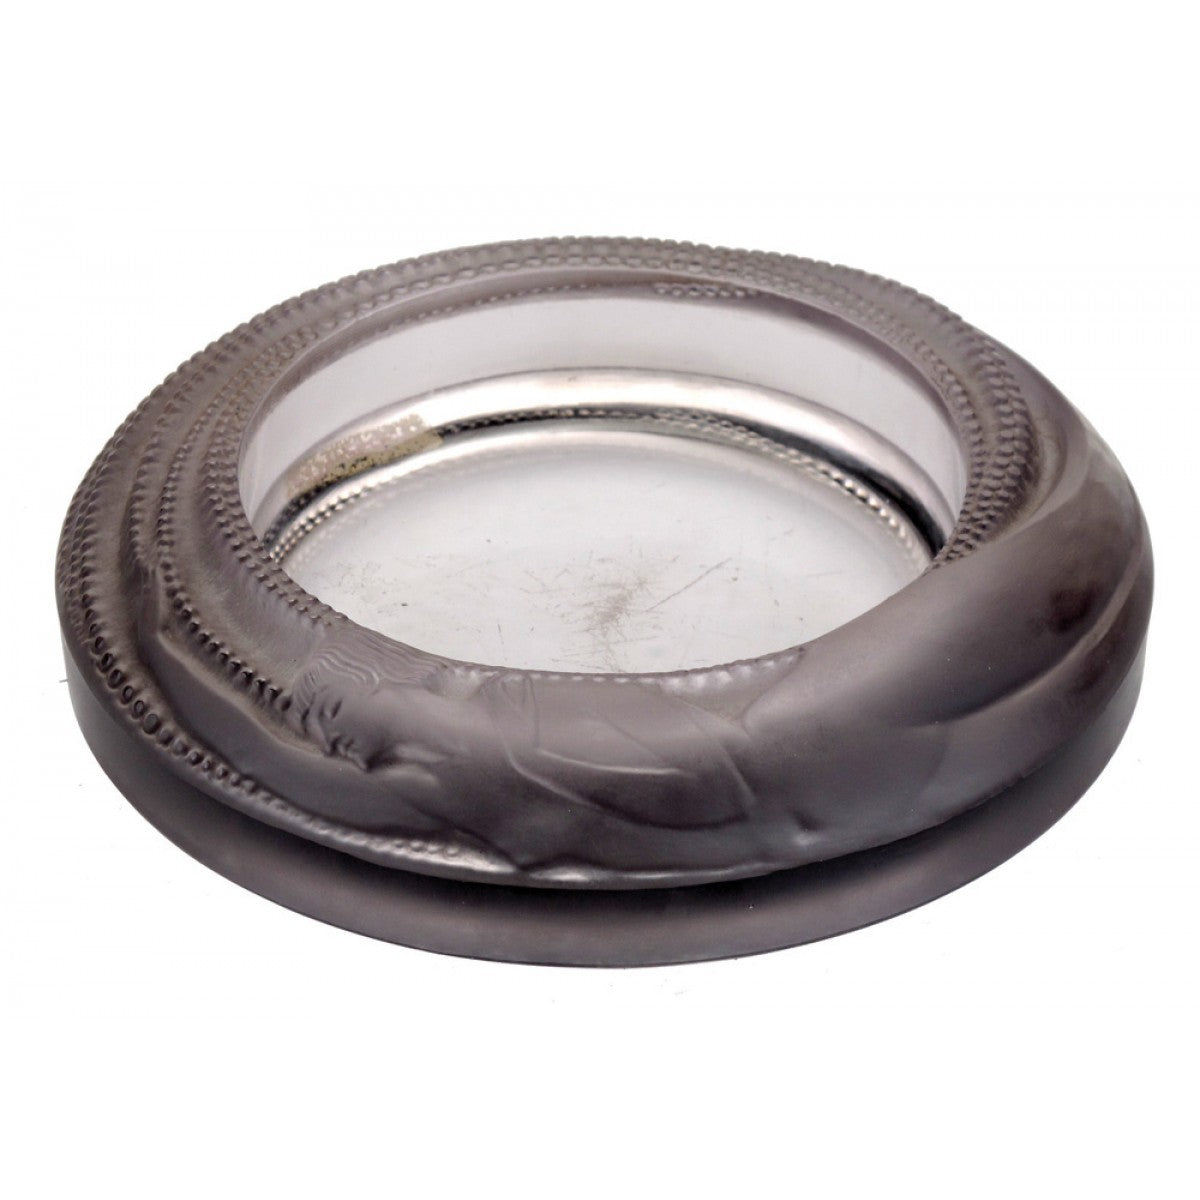 Alique antheor glass ashtray